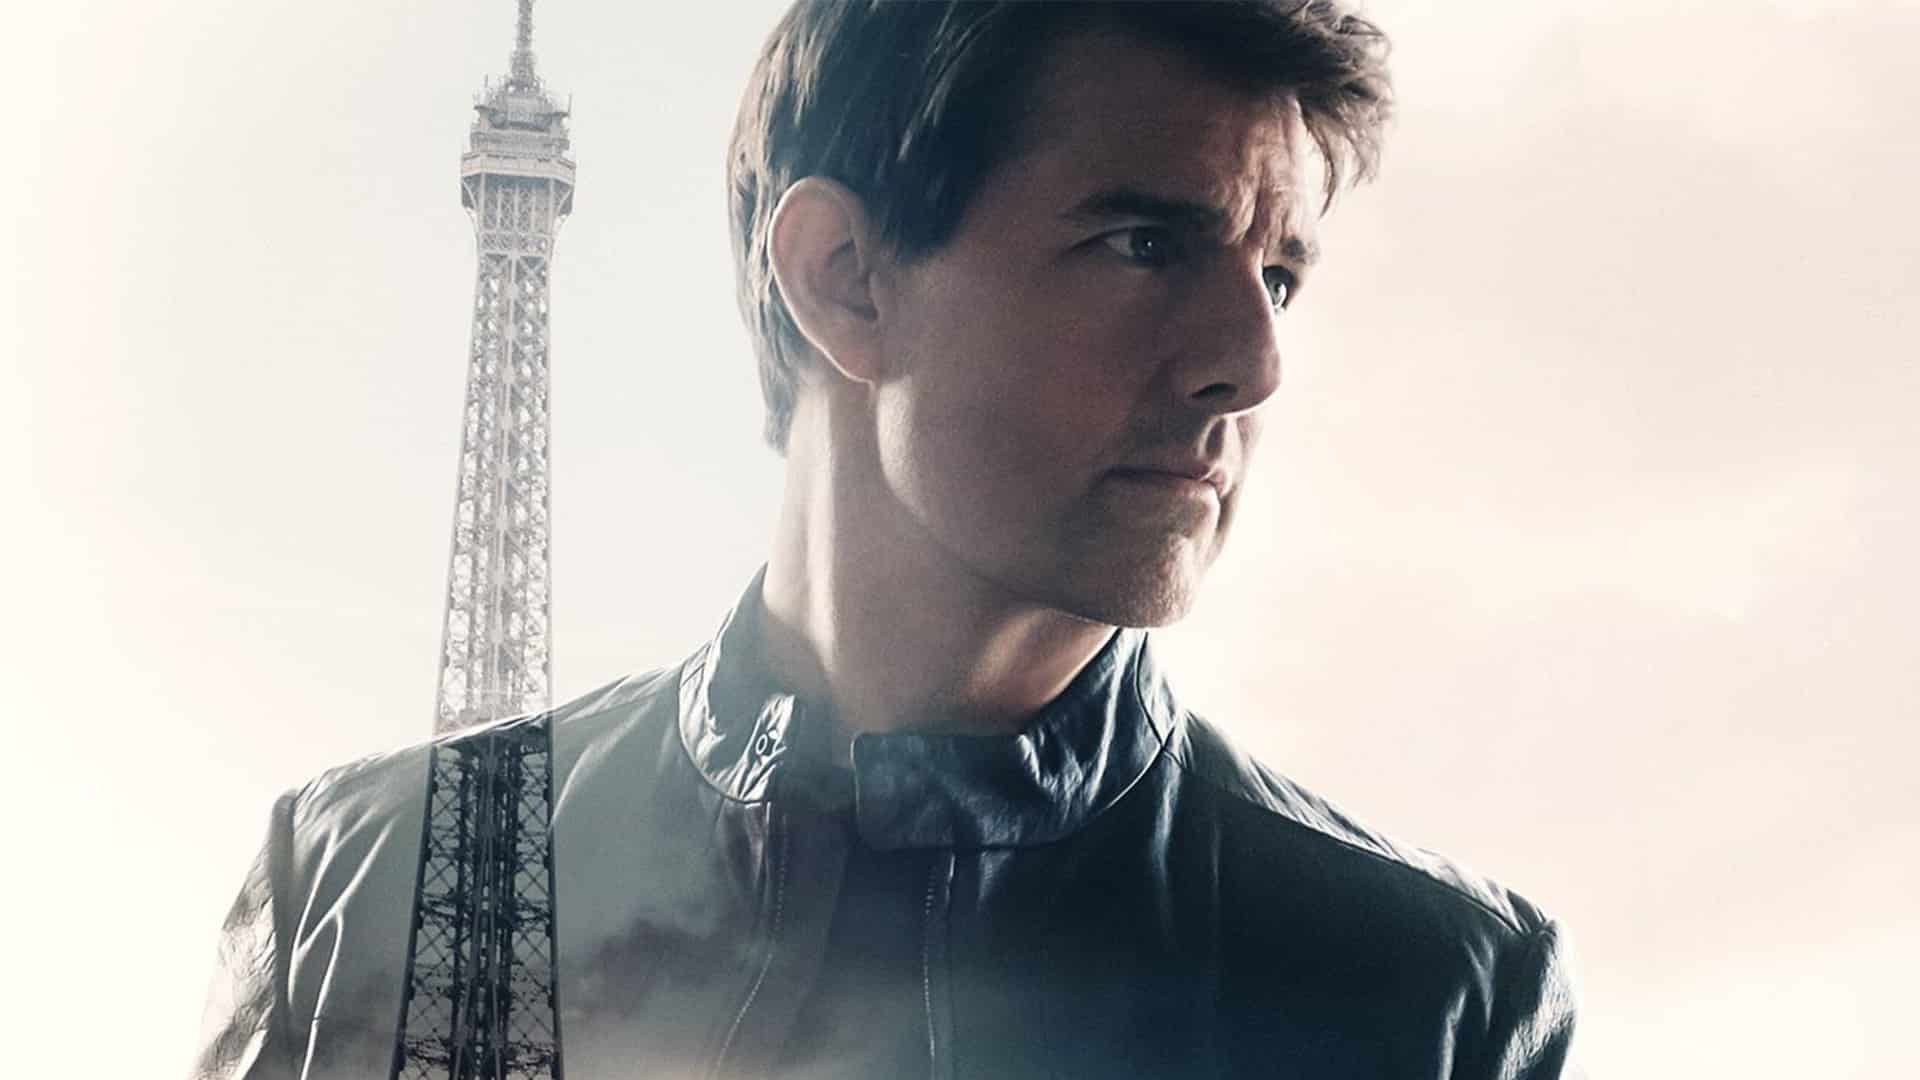 Oficiálny trailer na Mission: Impossible - Fallout je tu